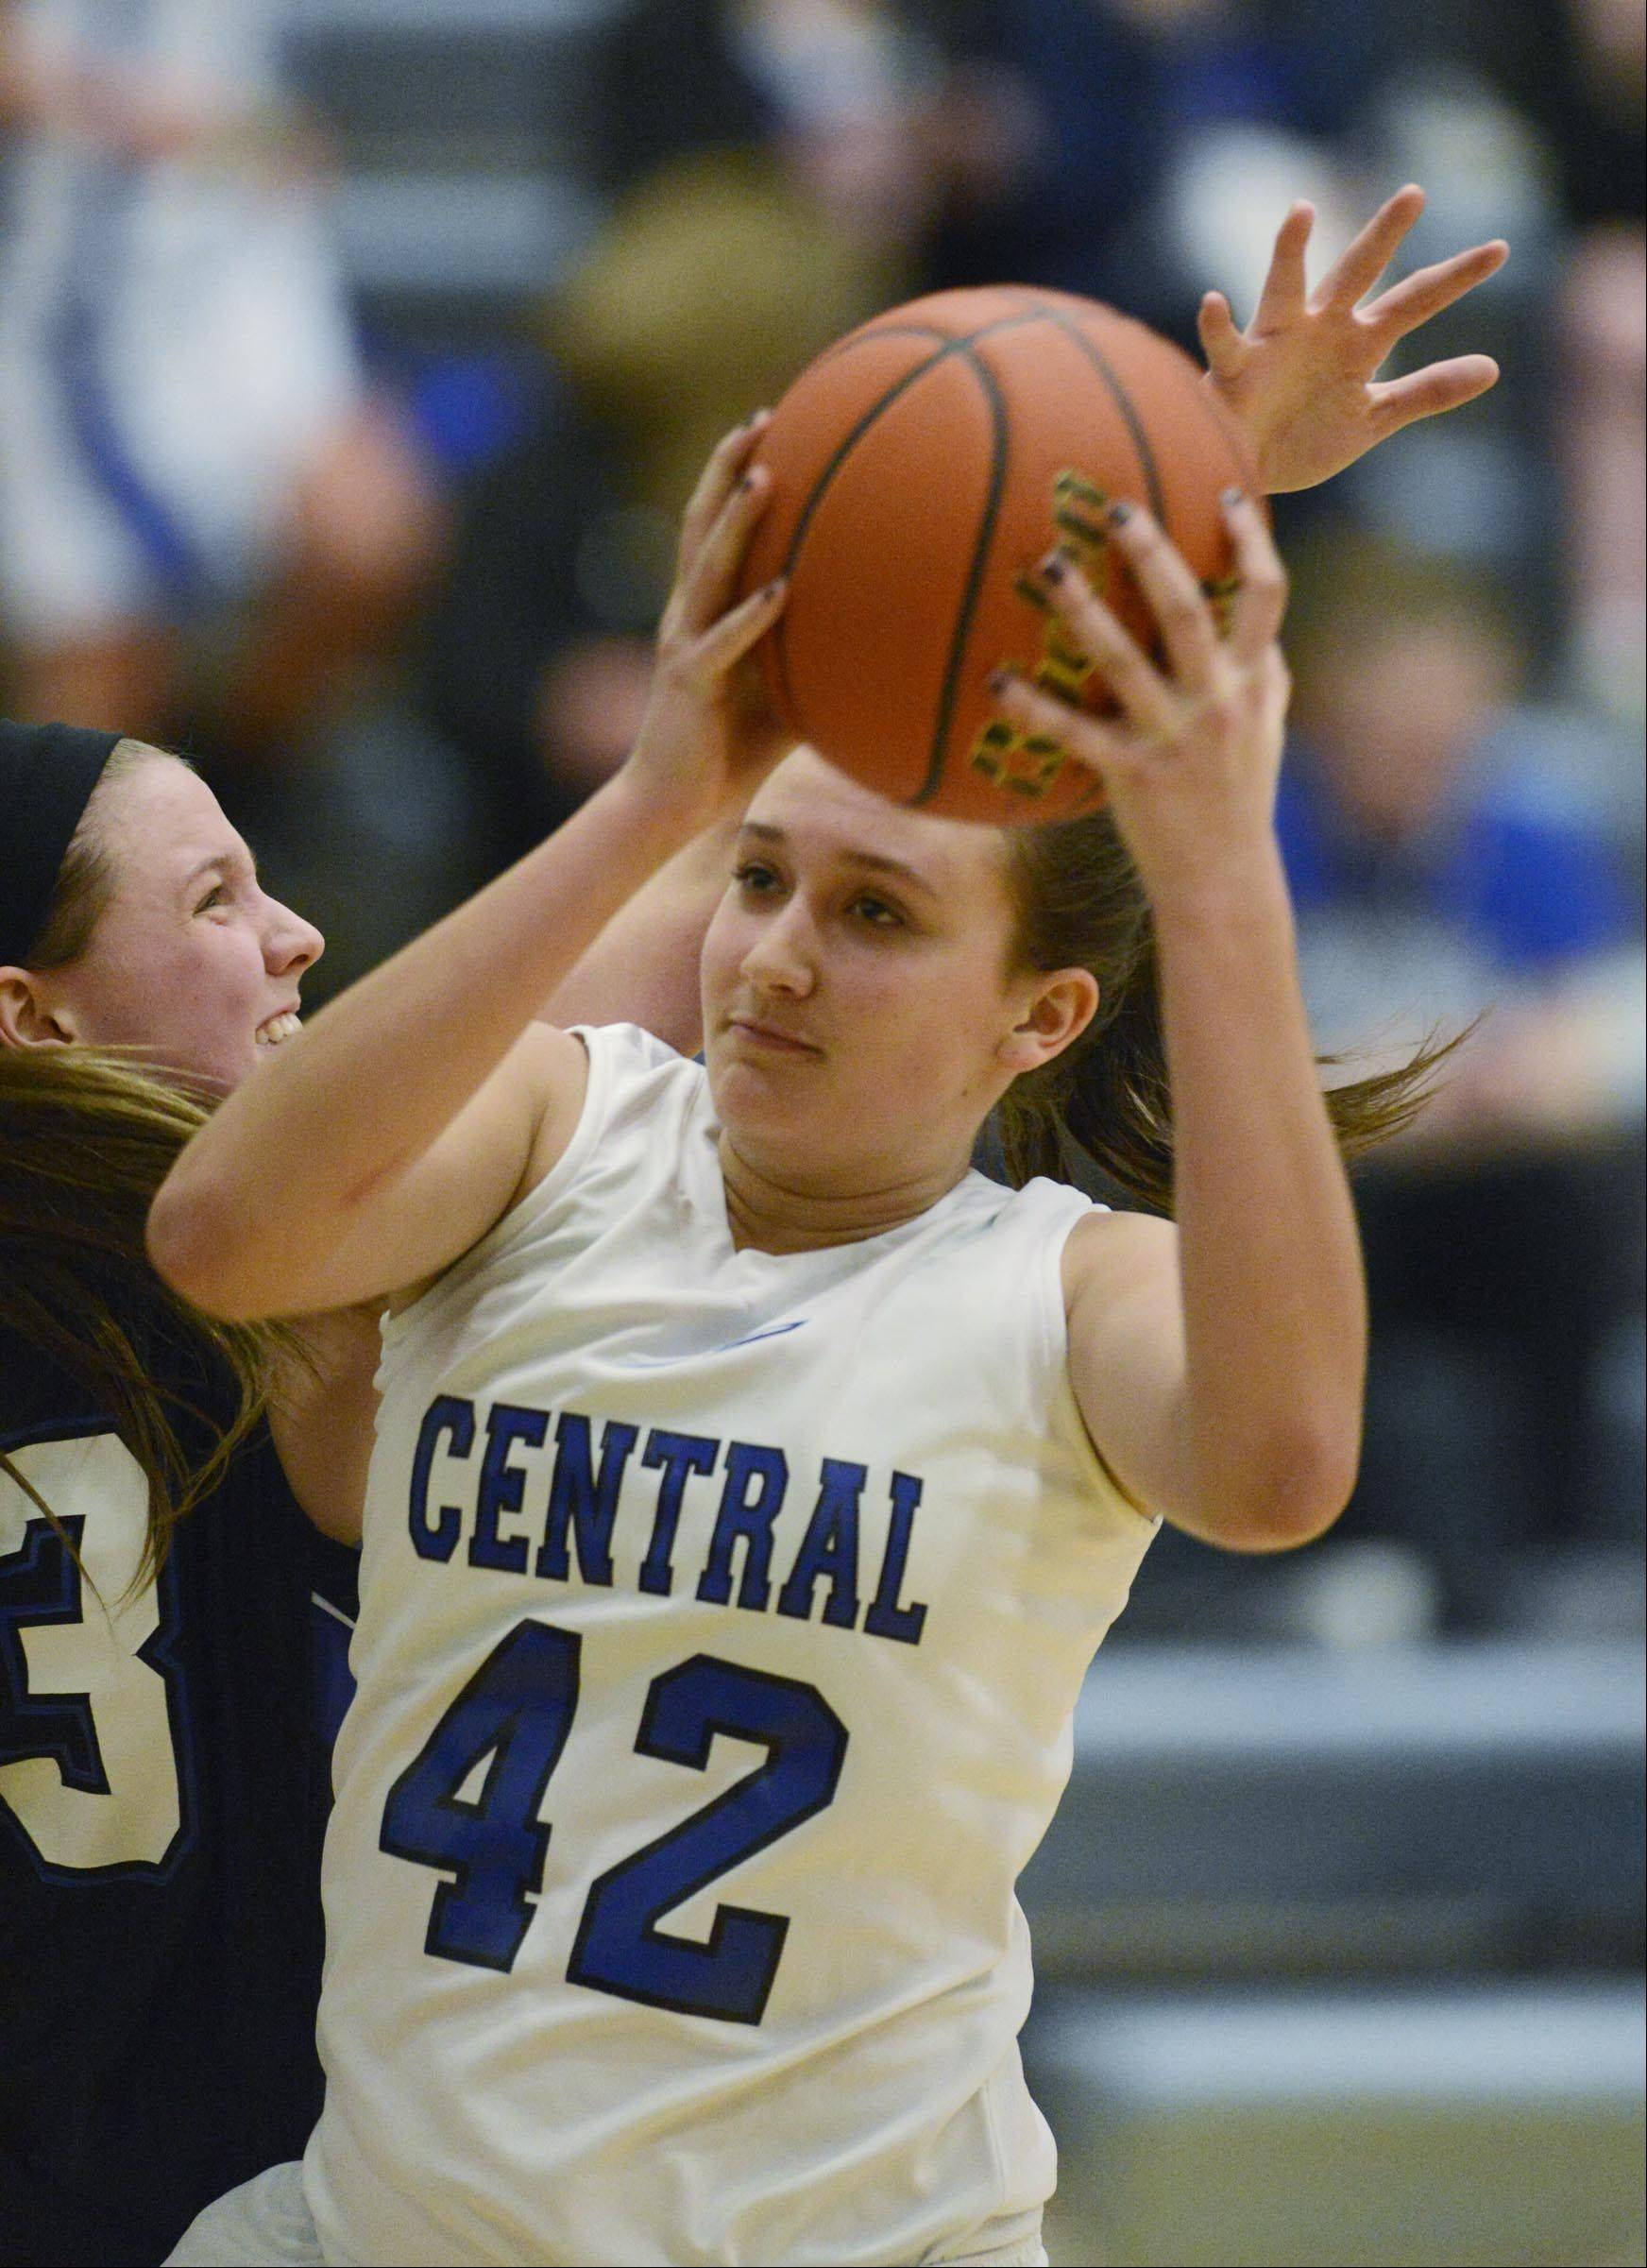 Burlington Central's Alison Colby (42) gets past St. Charles North's Nicole Davidson Tuesday in Burlington.